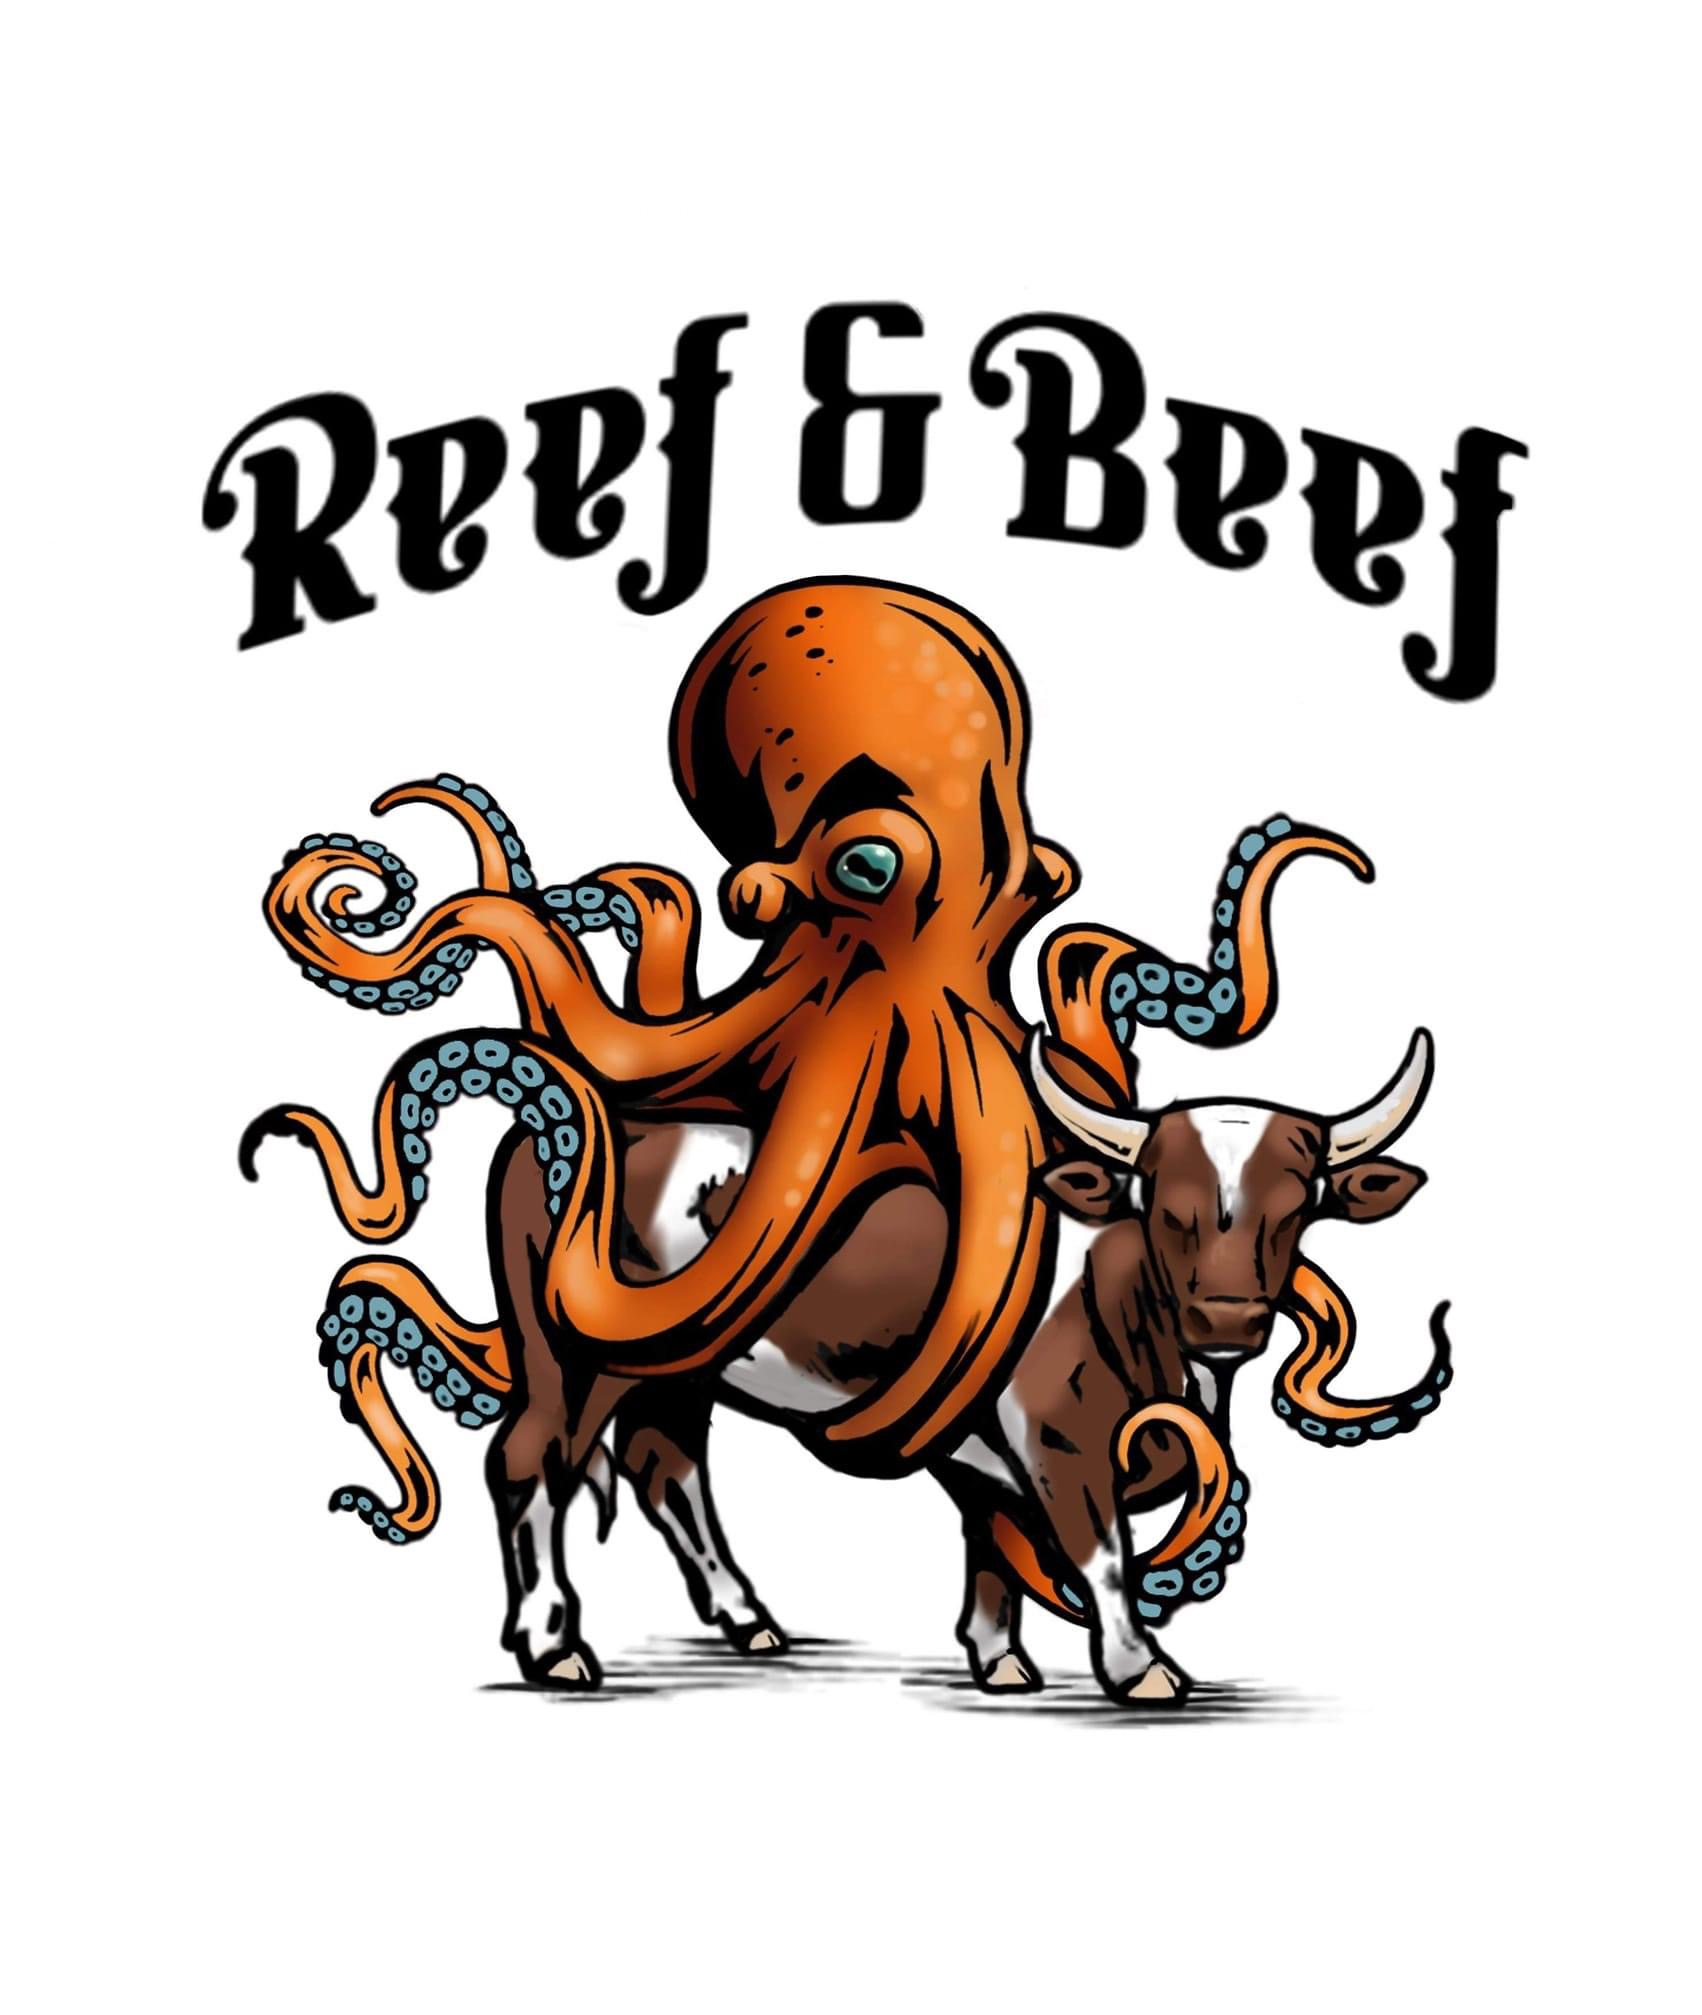 Reef and Beef